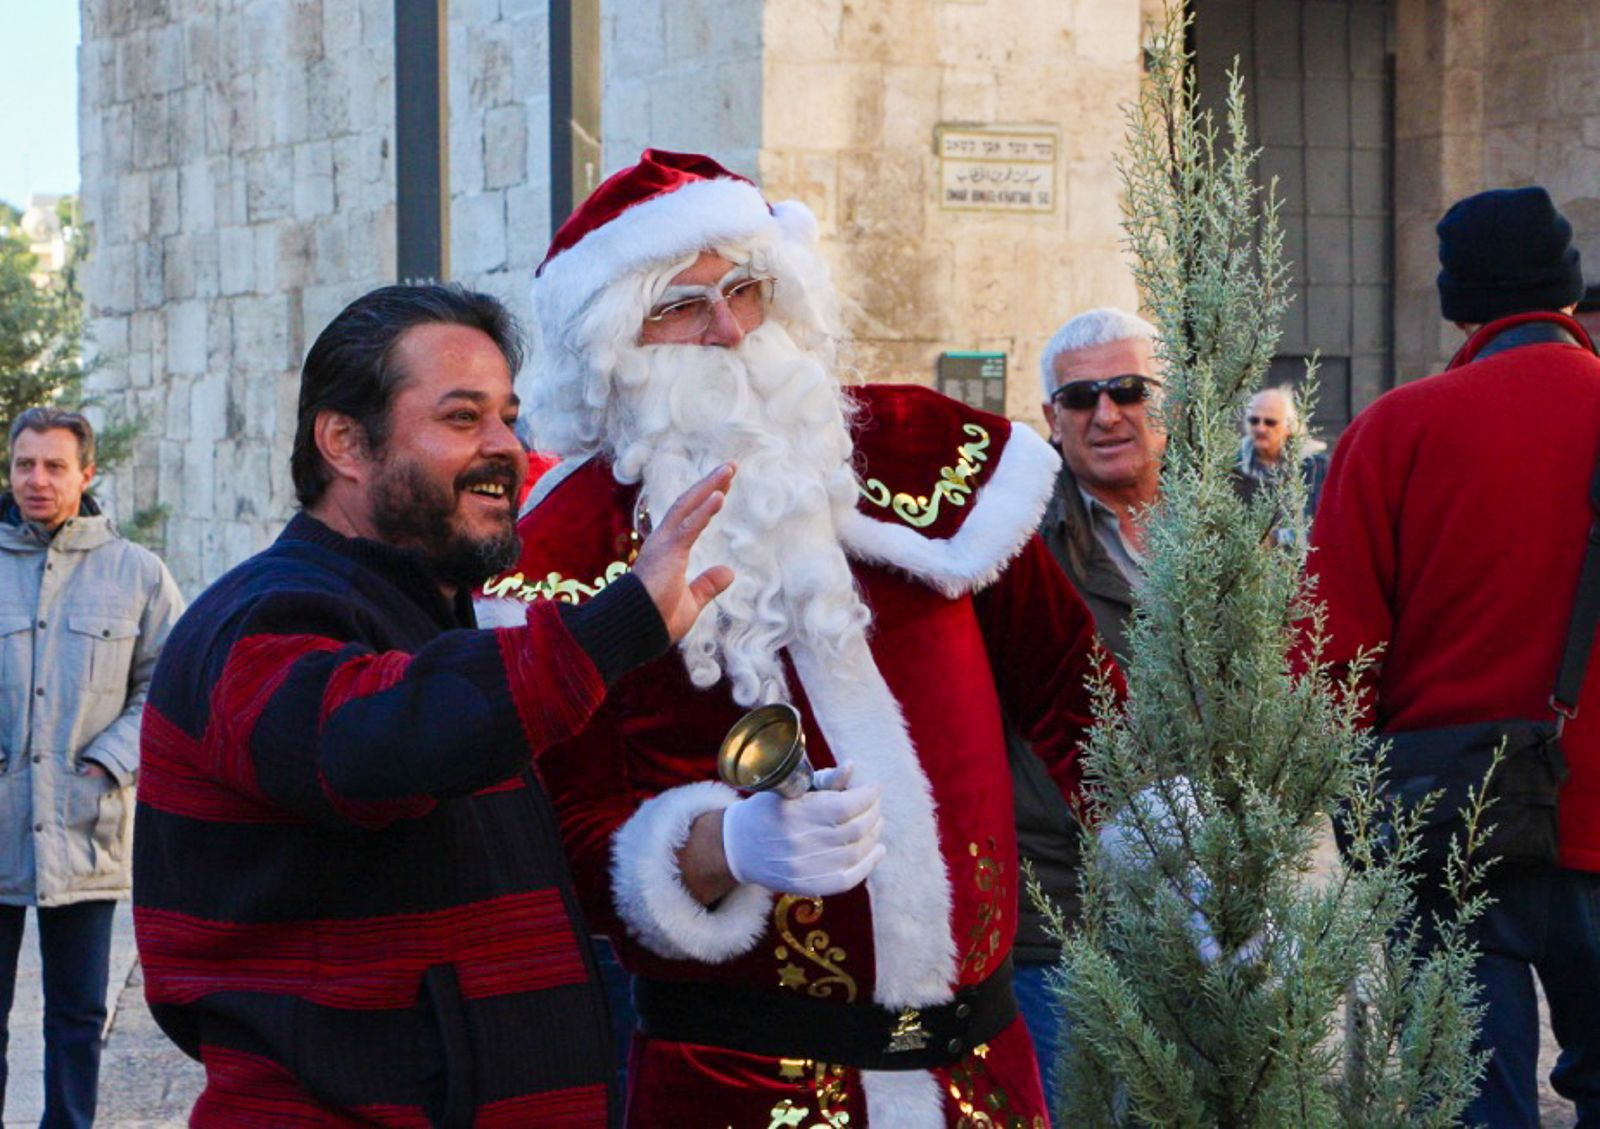 Santa poses for a photo while helping to give out free Christmas trees in Jerusalem on December 20, 2016